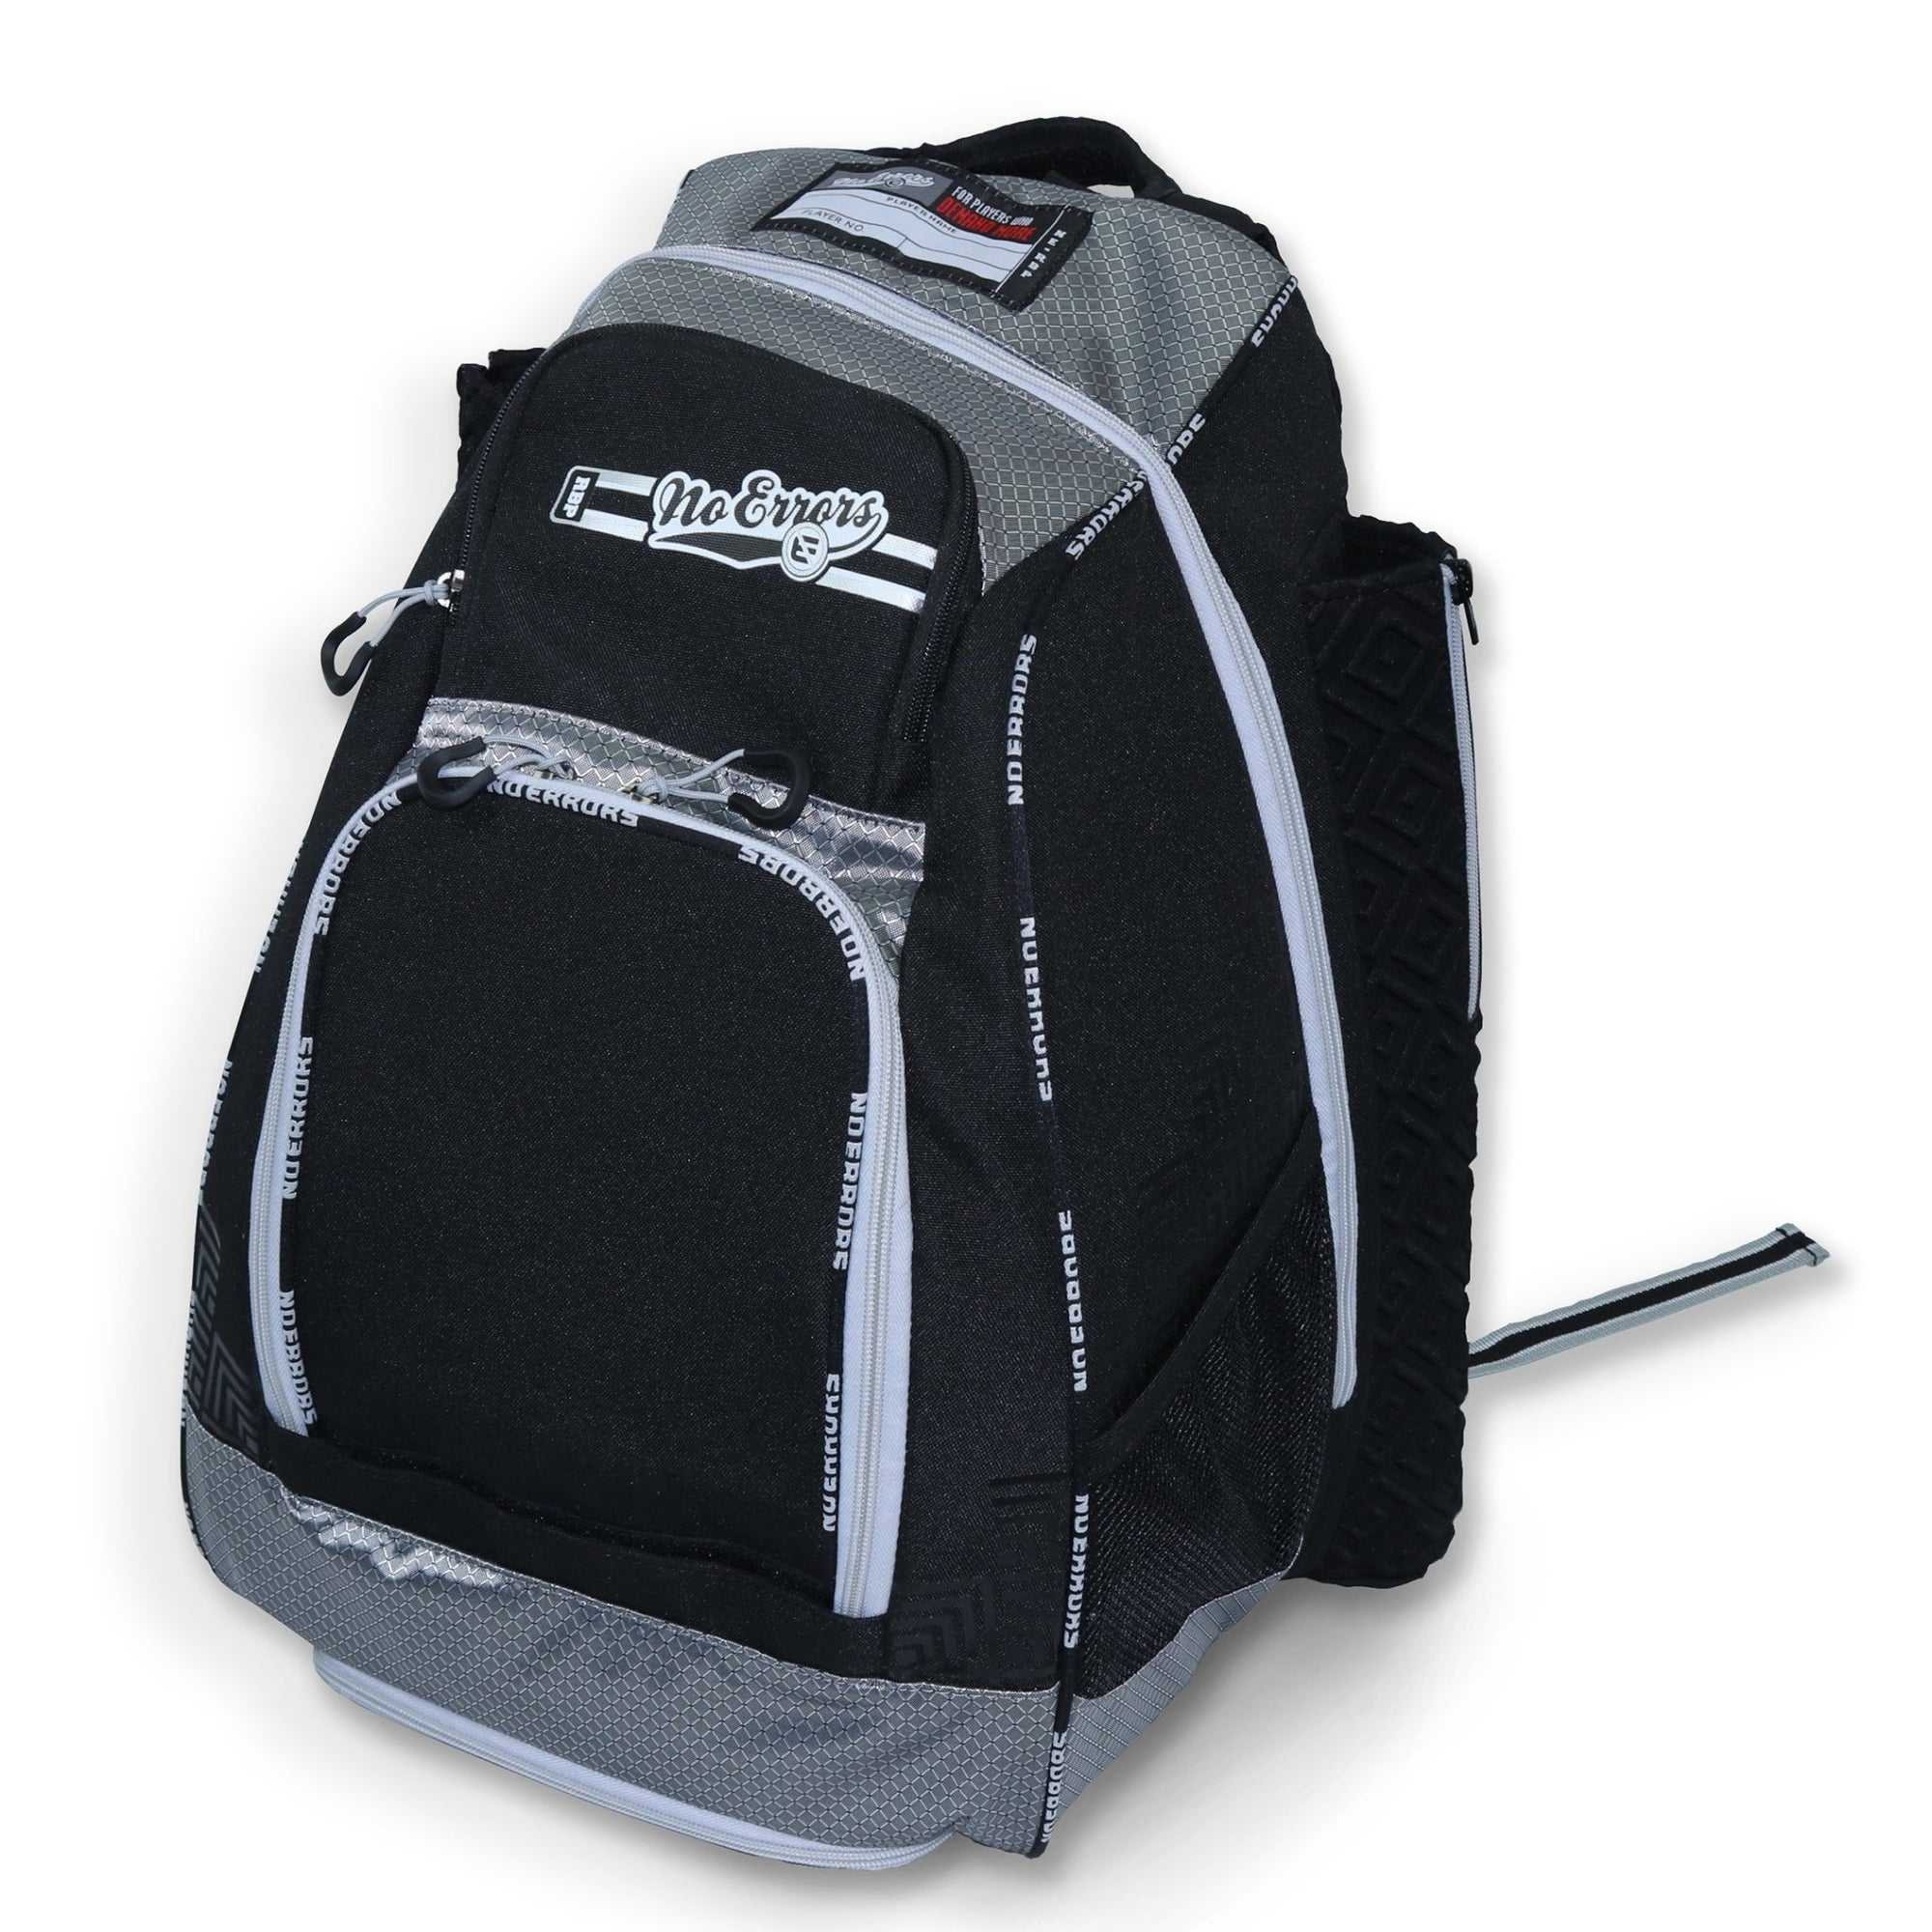 RBP Backpack Bag by No Errors | Perfect for Baseball, Softball Gear